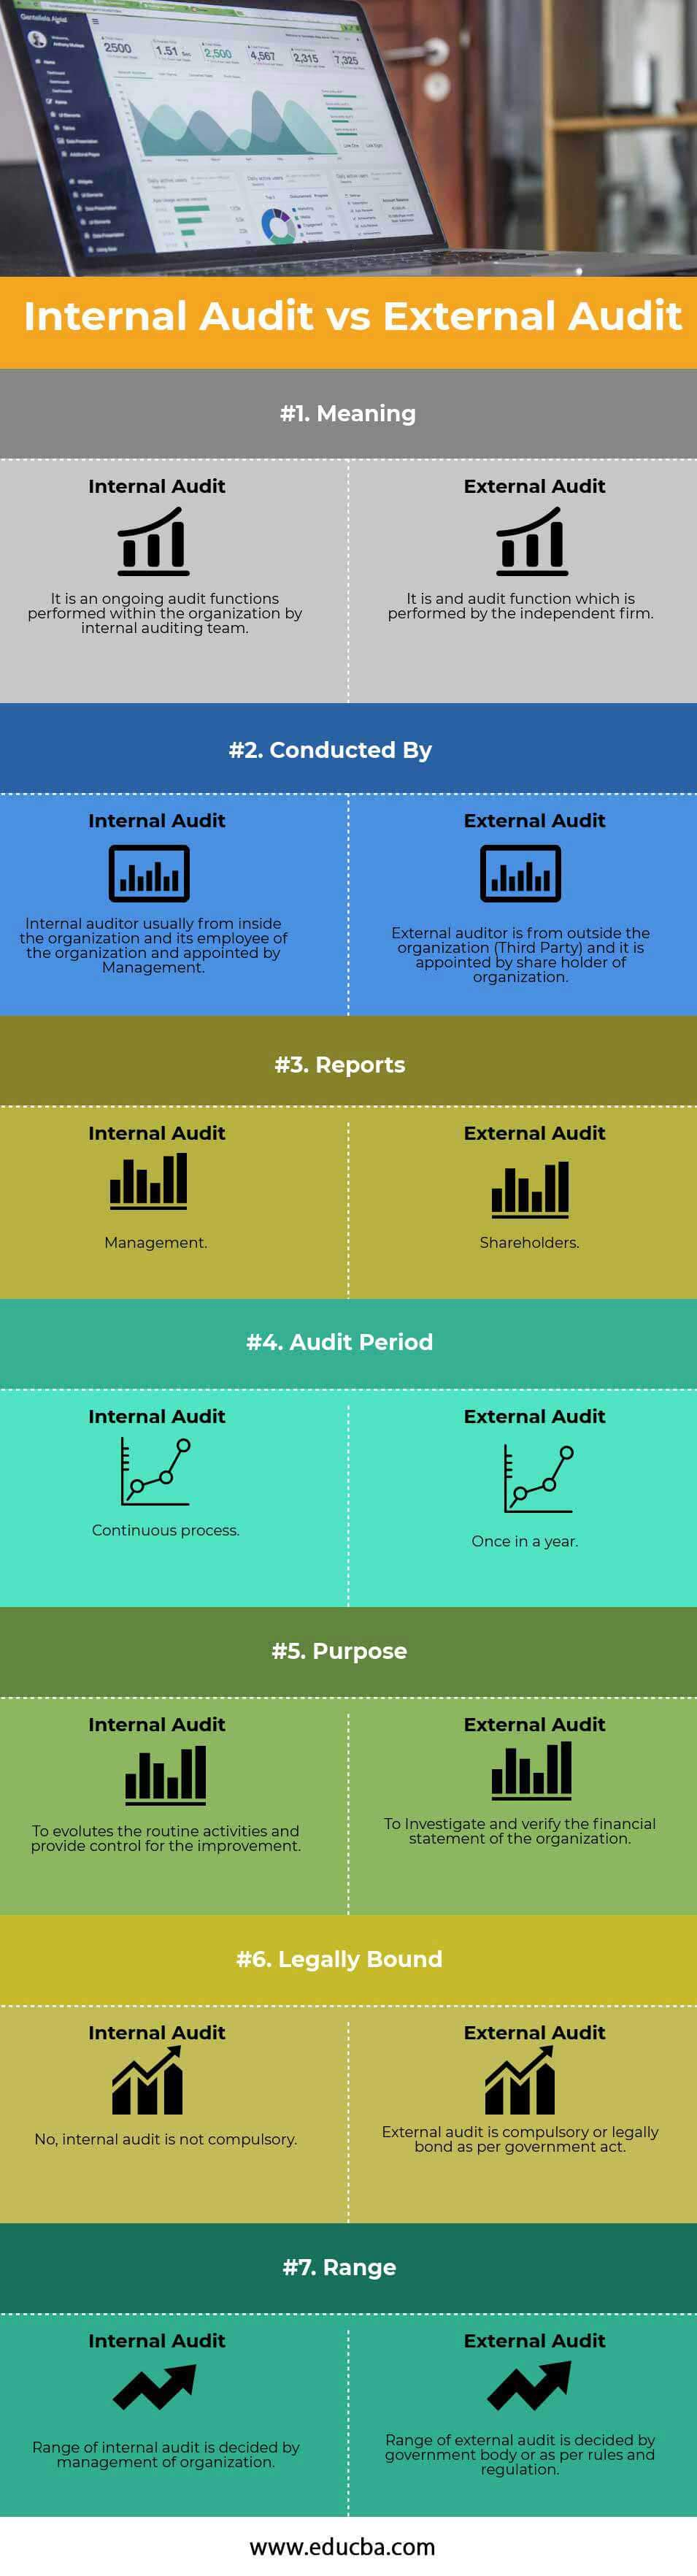 Internal Audit vs External Audit (info)